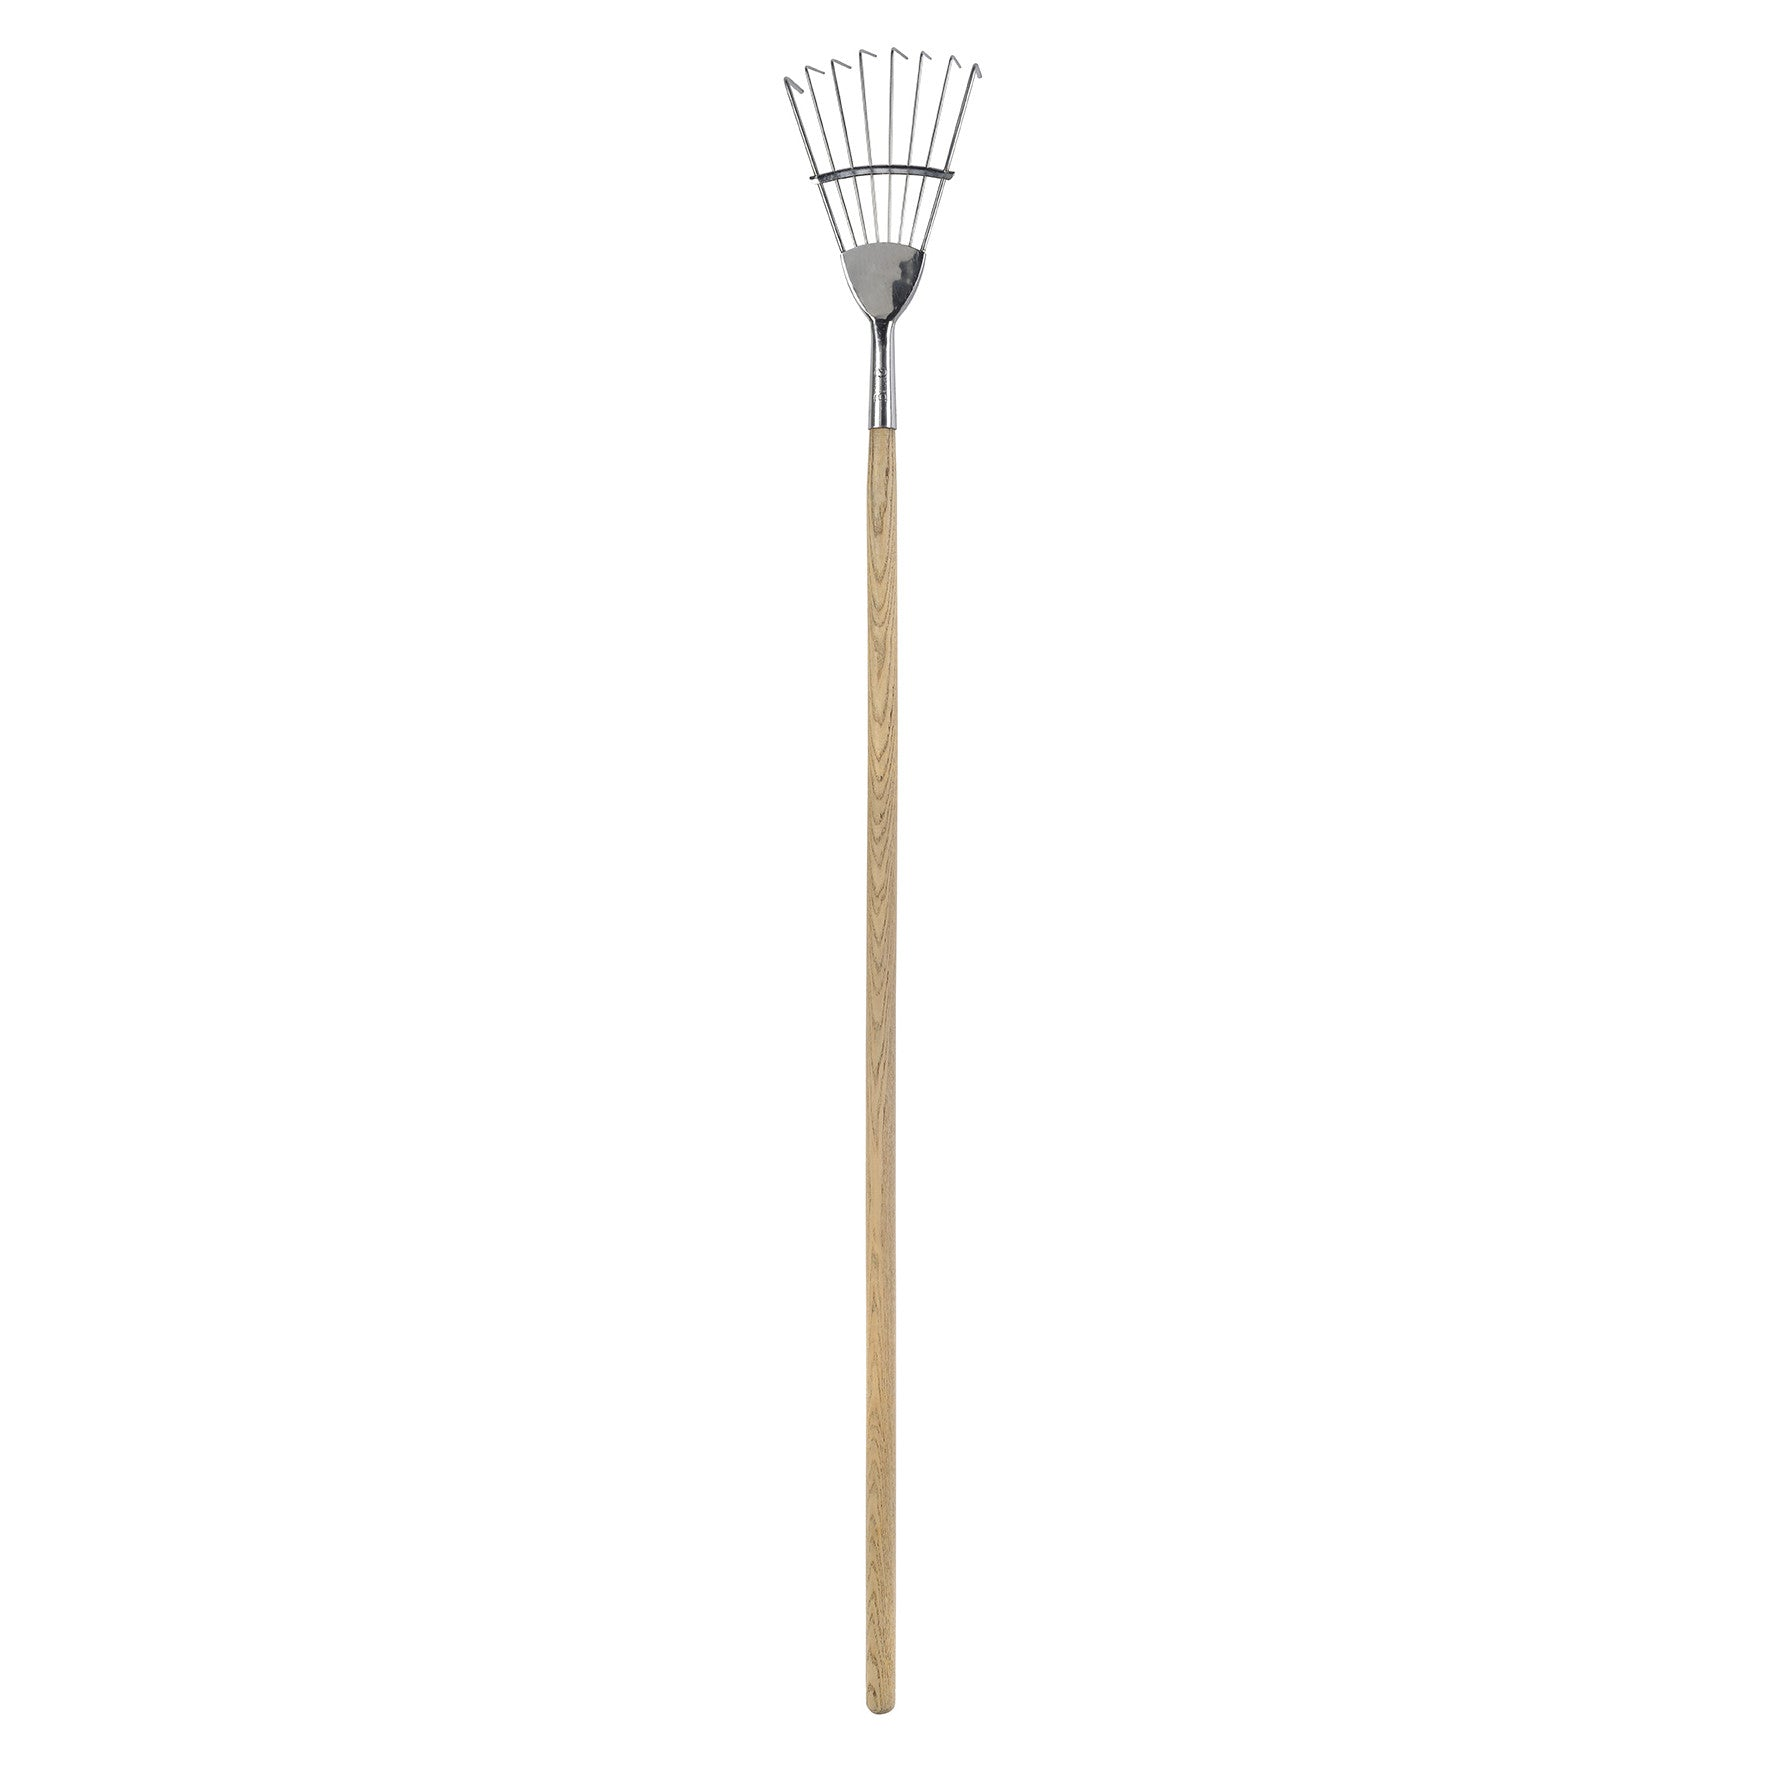 Long Handled Culti-Rake - Stainless Steel